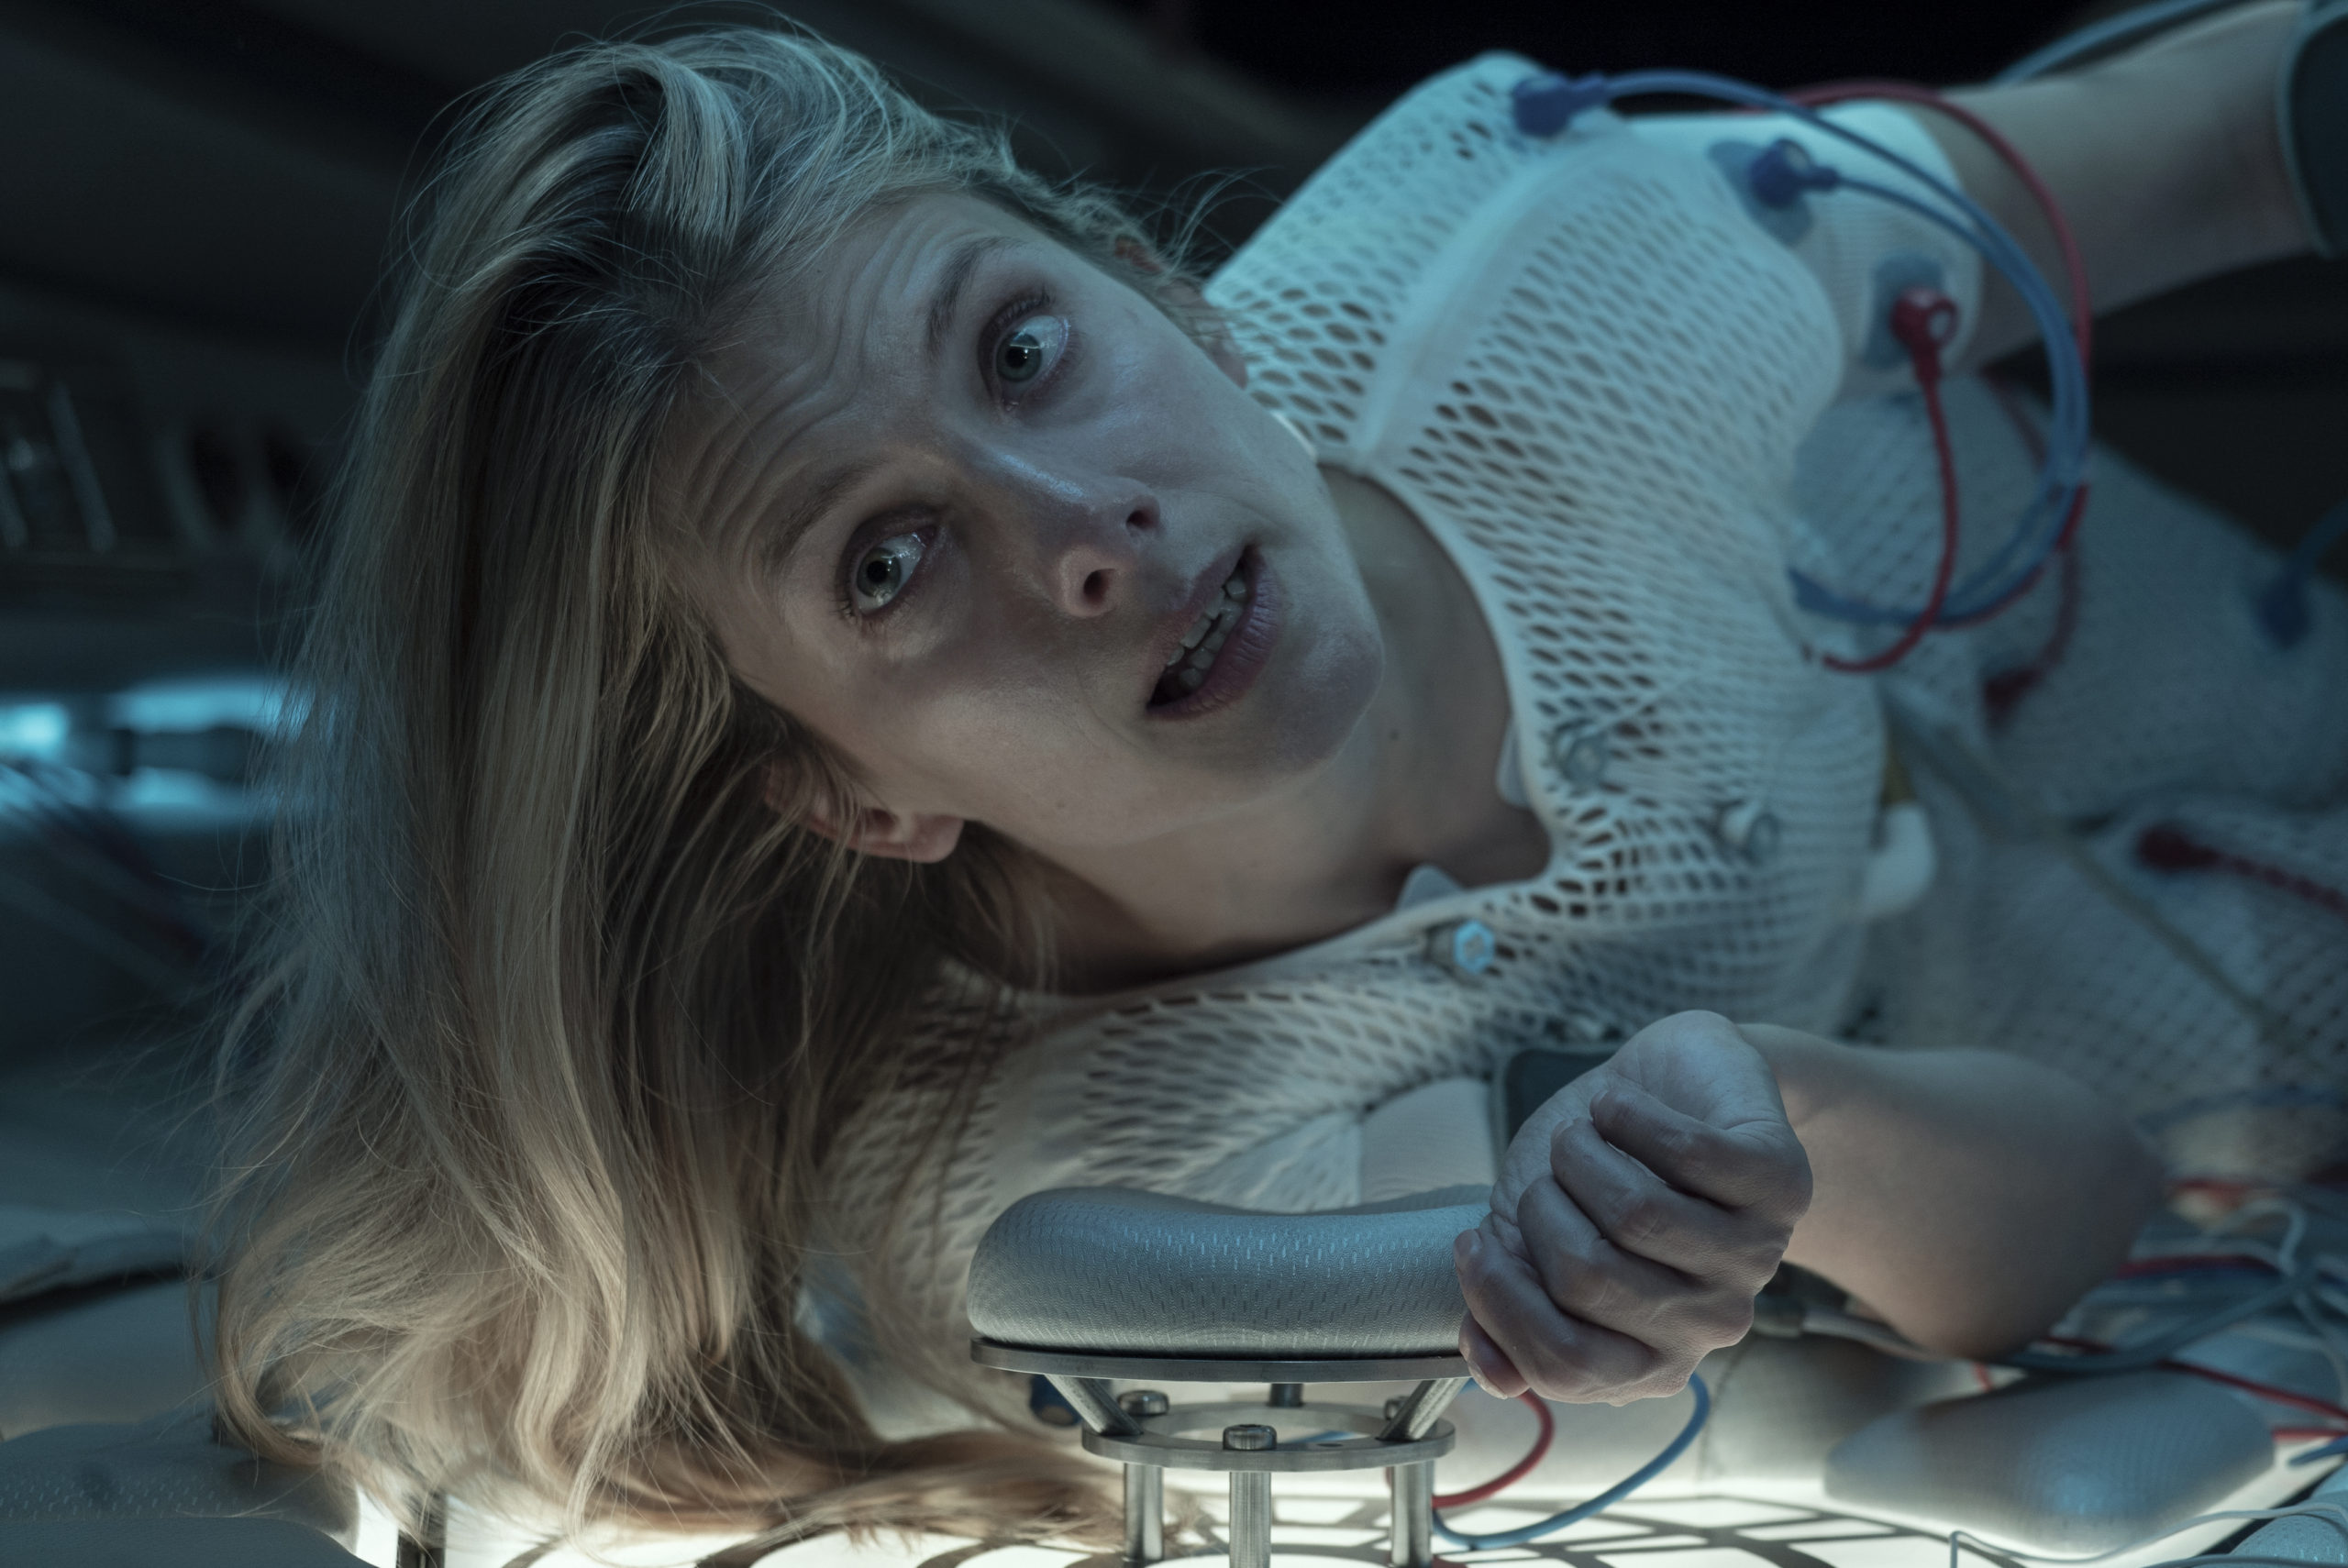 High Tension' and 'Crawl' Director Alexandre Aja is Back With Netflix Thriller 'Oxygen' in May [Trailer] - Bloody Disgusting